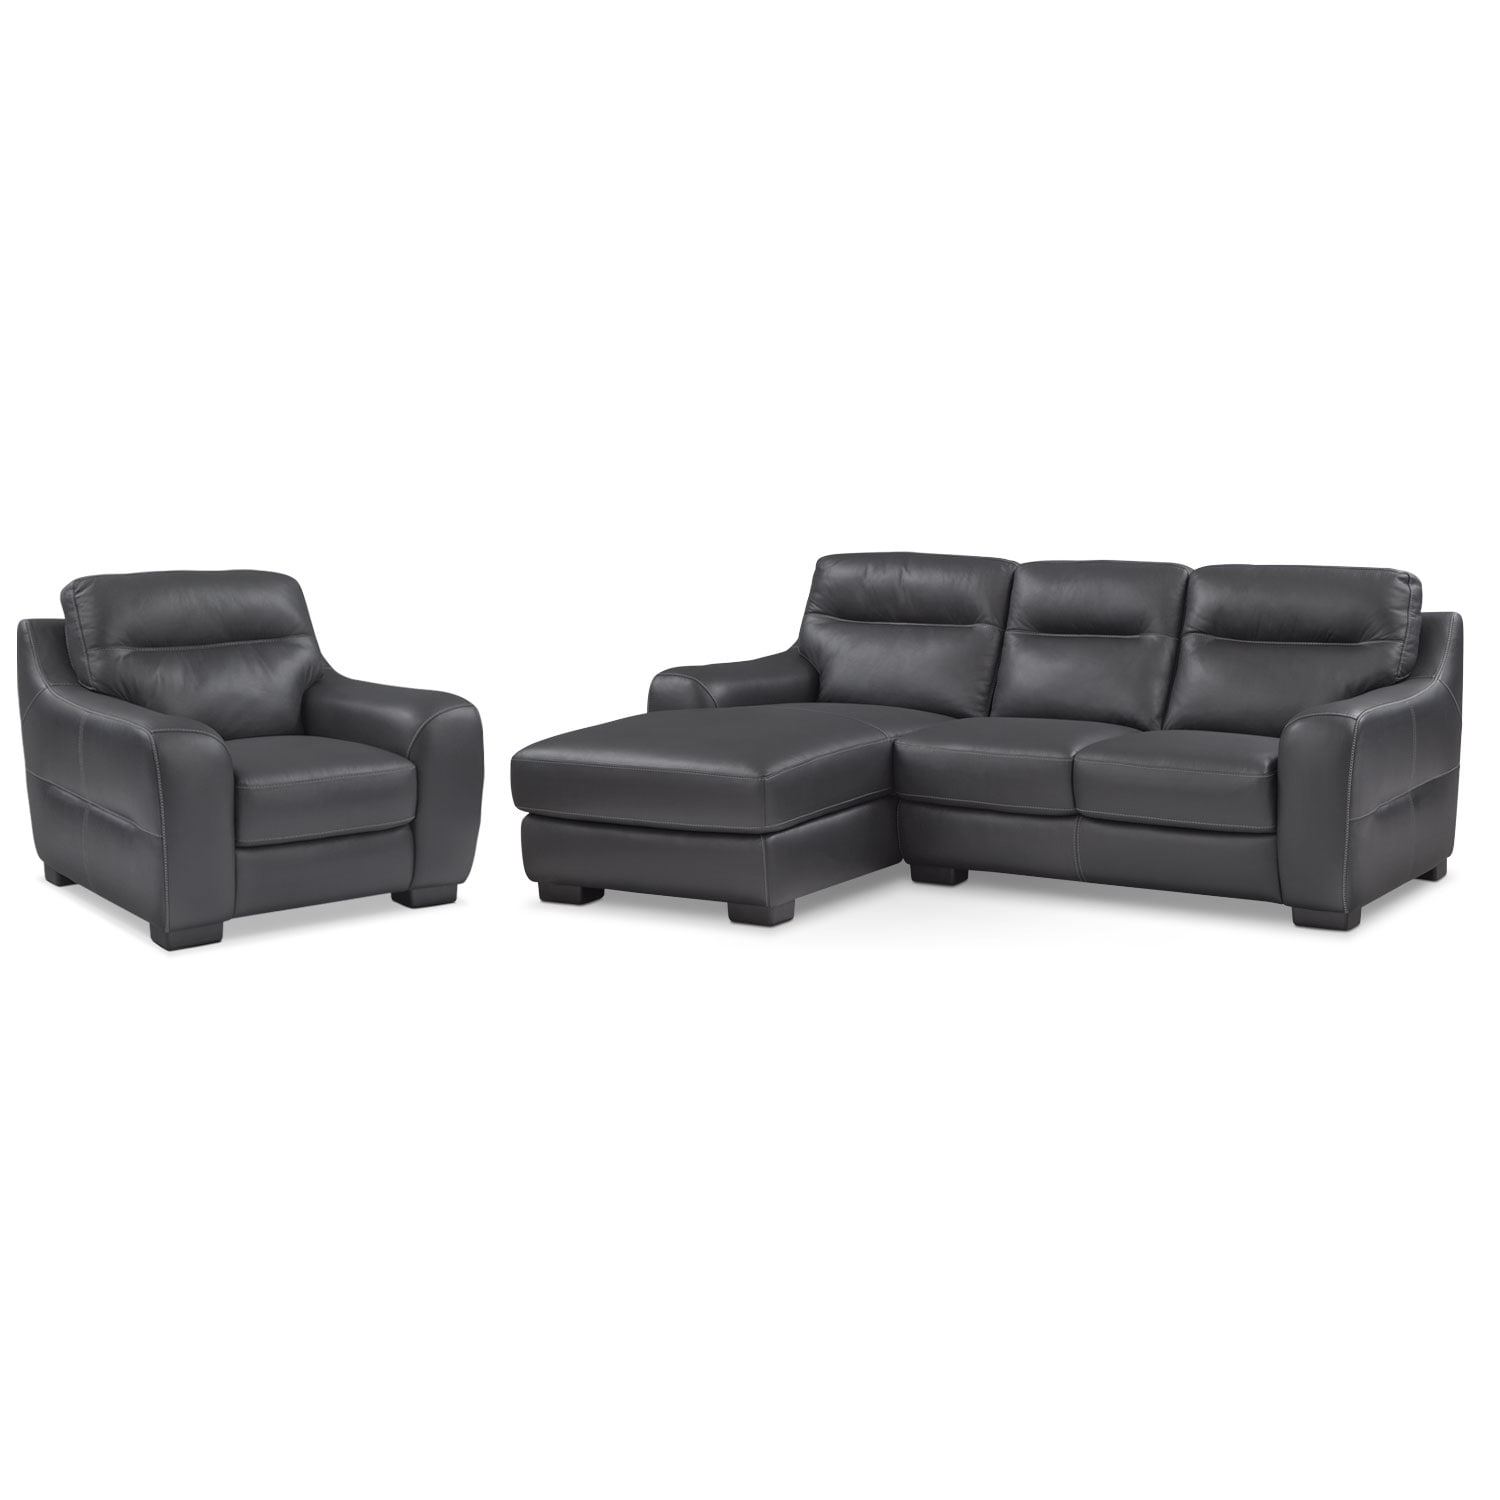 [Rocco Black 2 Pc. Left-Facing Chaise Sectional and Chair]